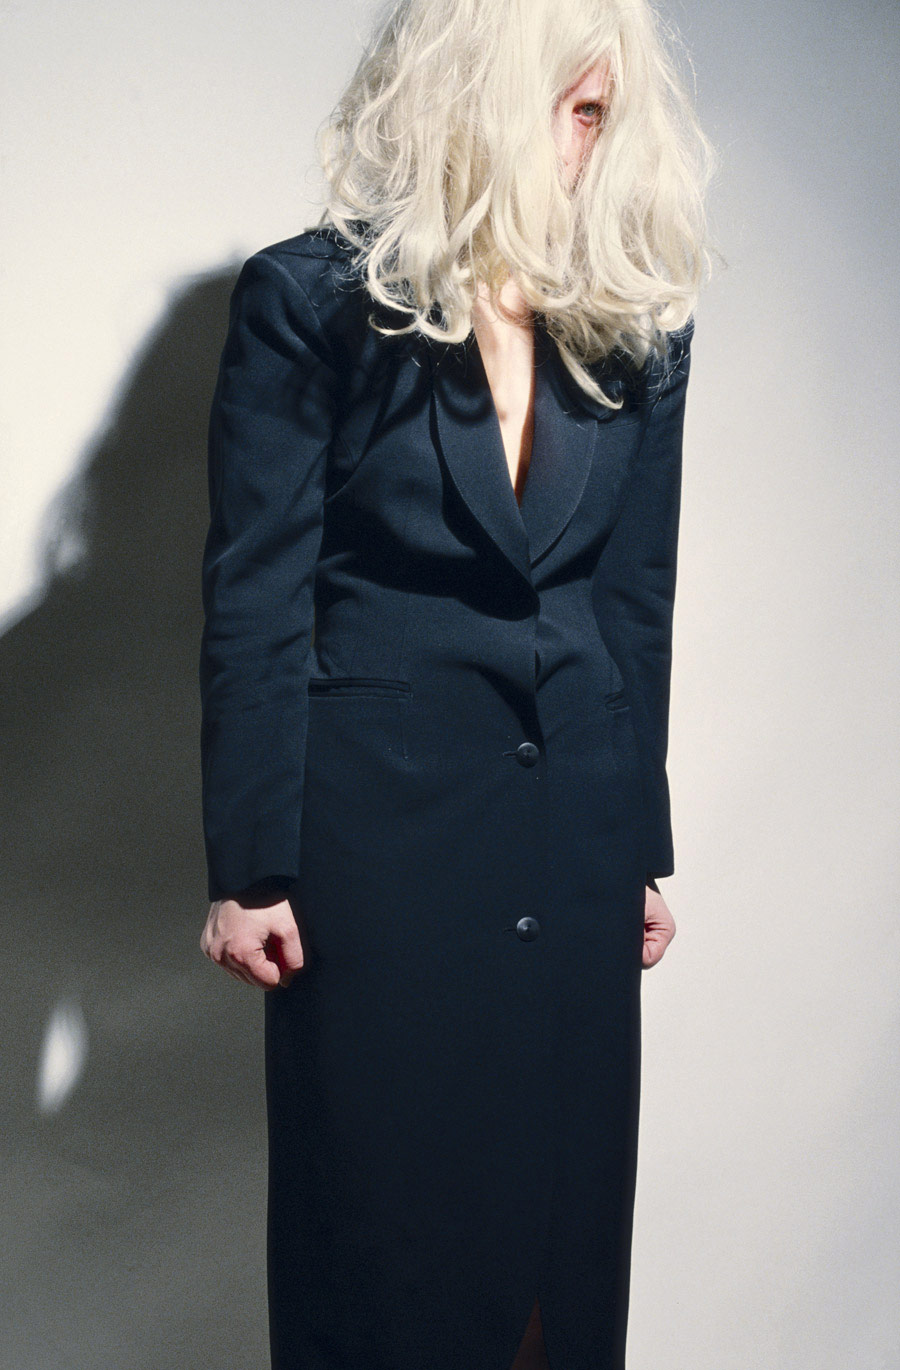 Image result for cindy sherman fashion series 122